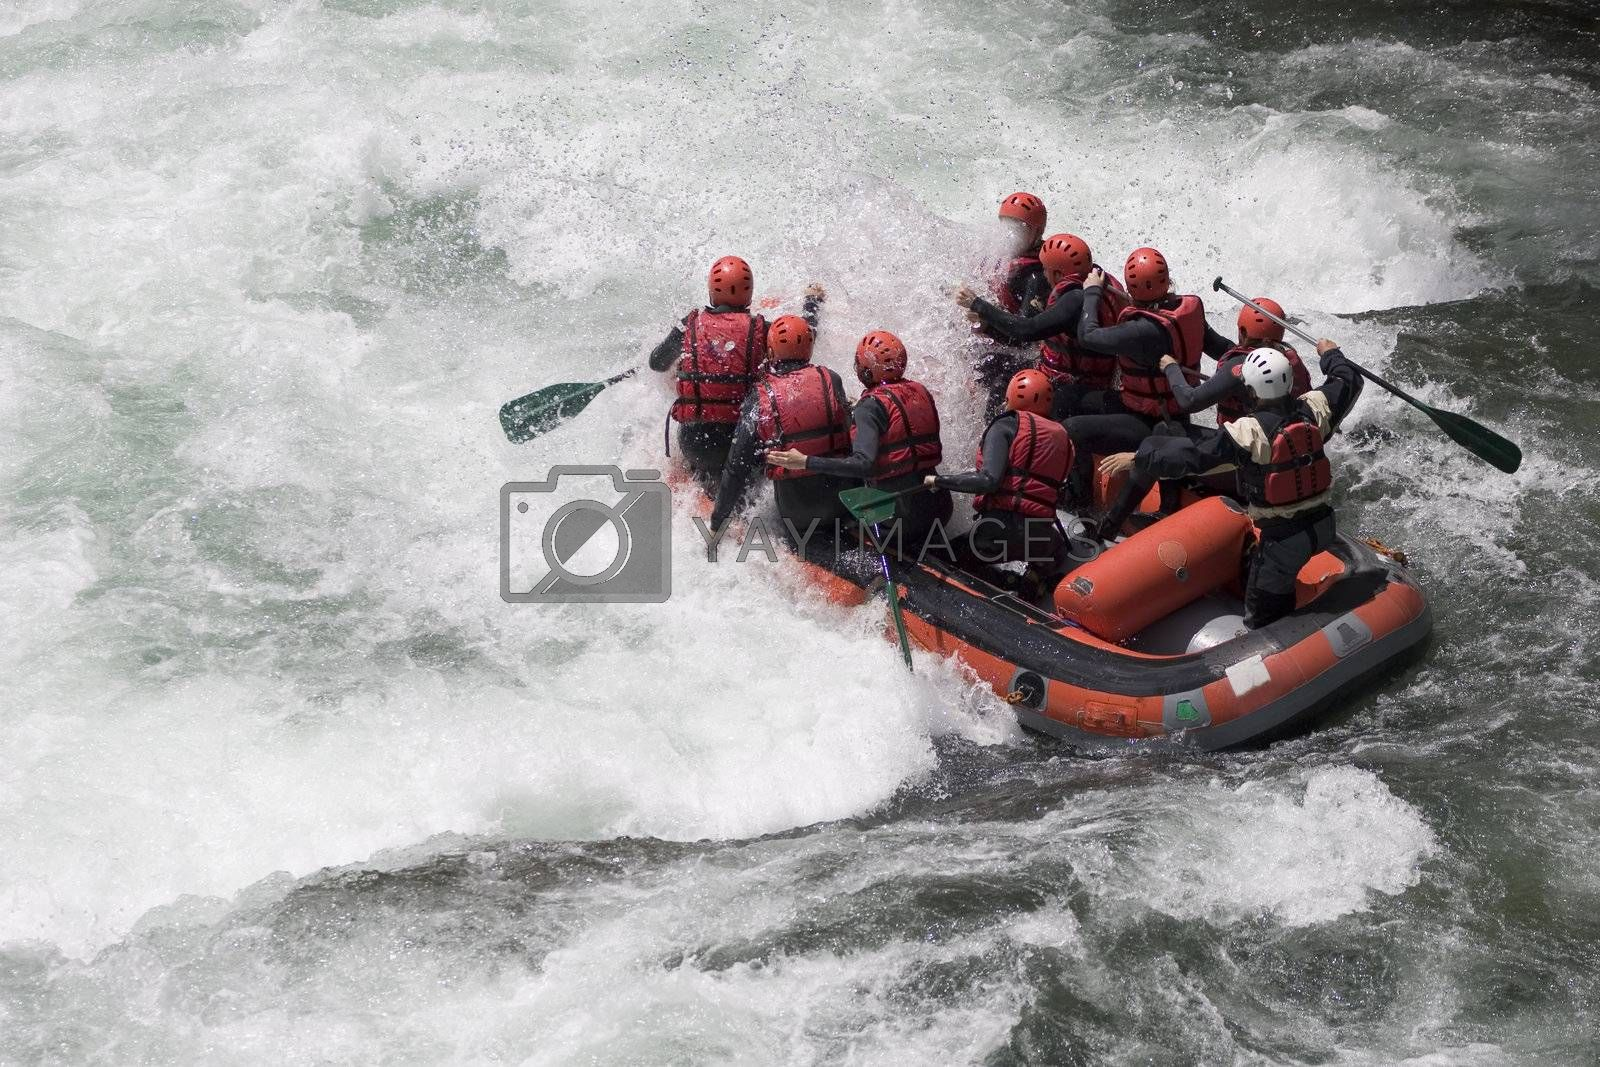 Whitewater rafting by ArtmannWitte